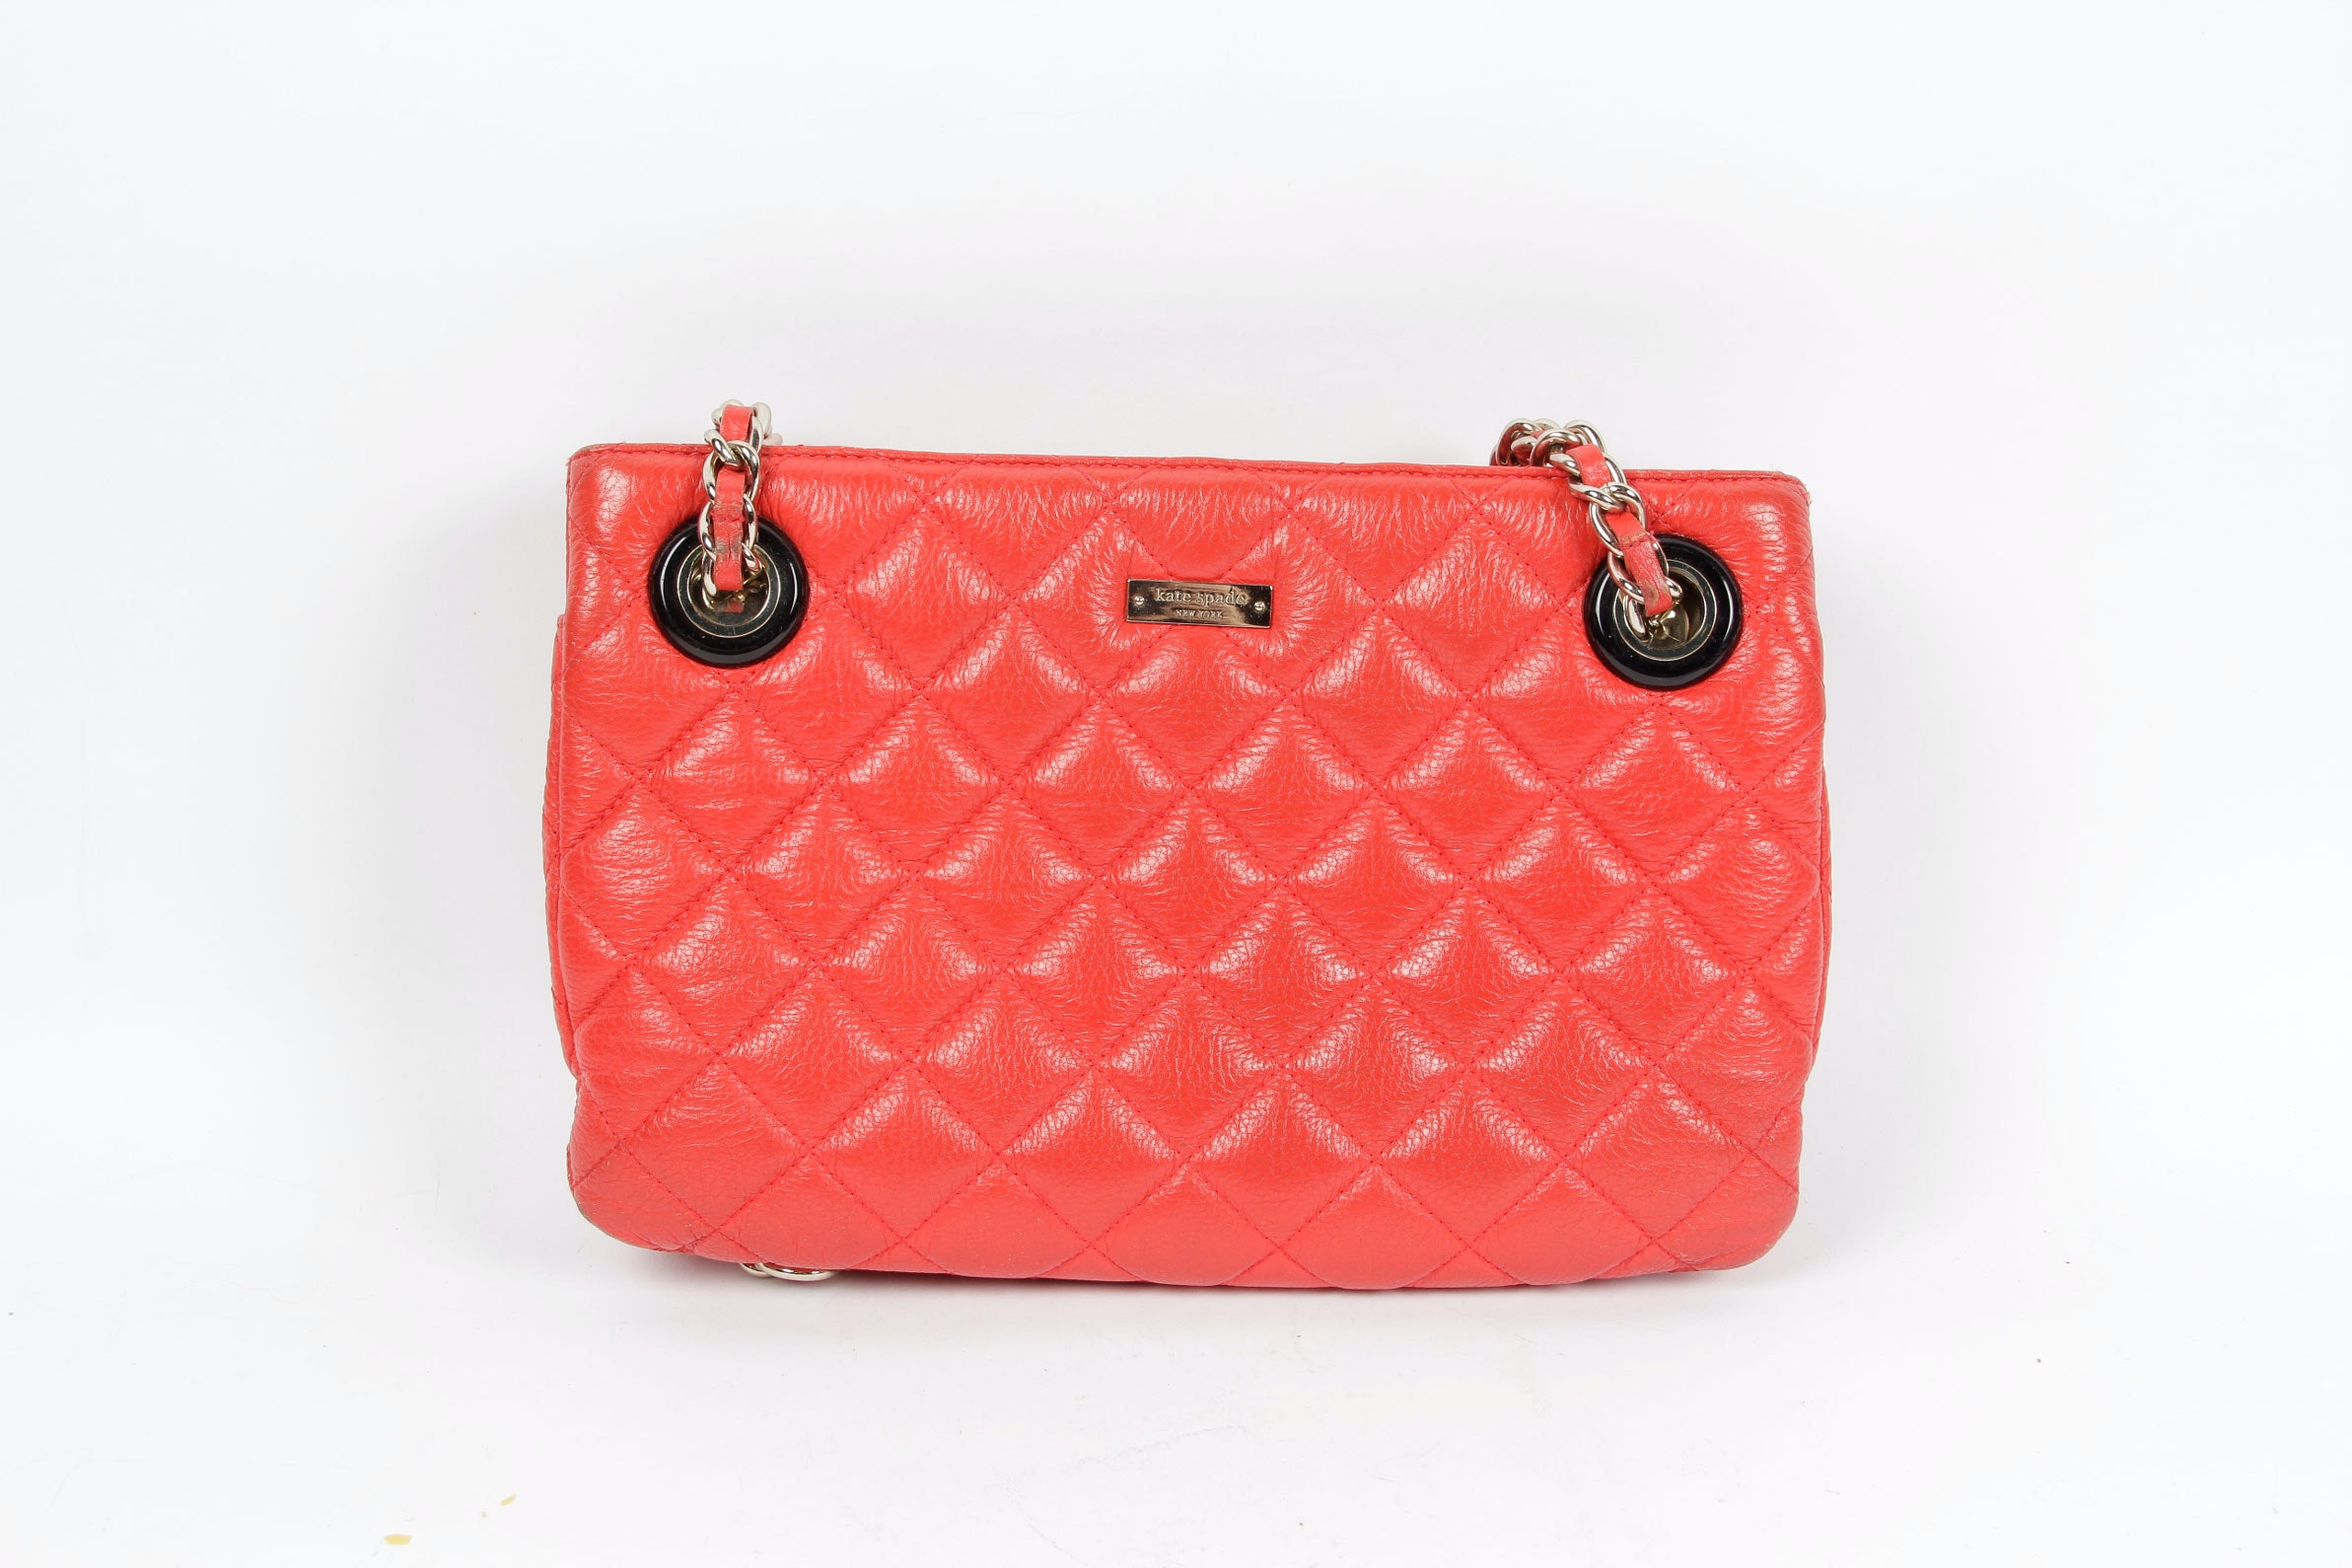 Kate Spade Quilted Red Leather Handbag